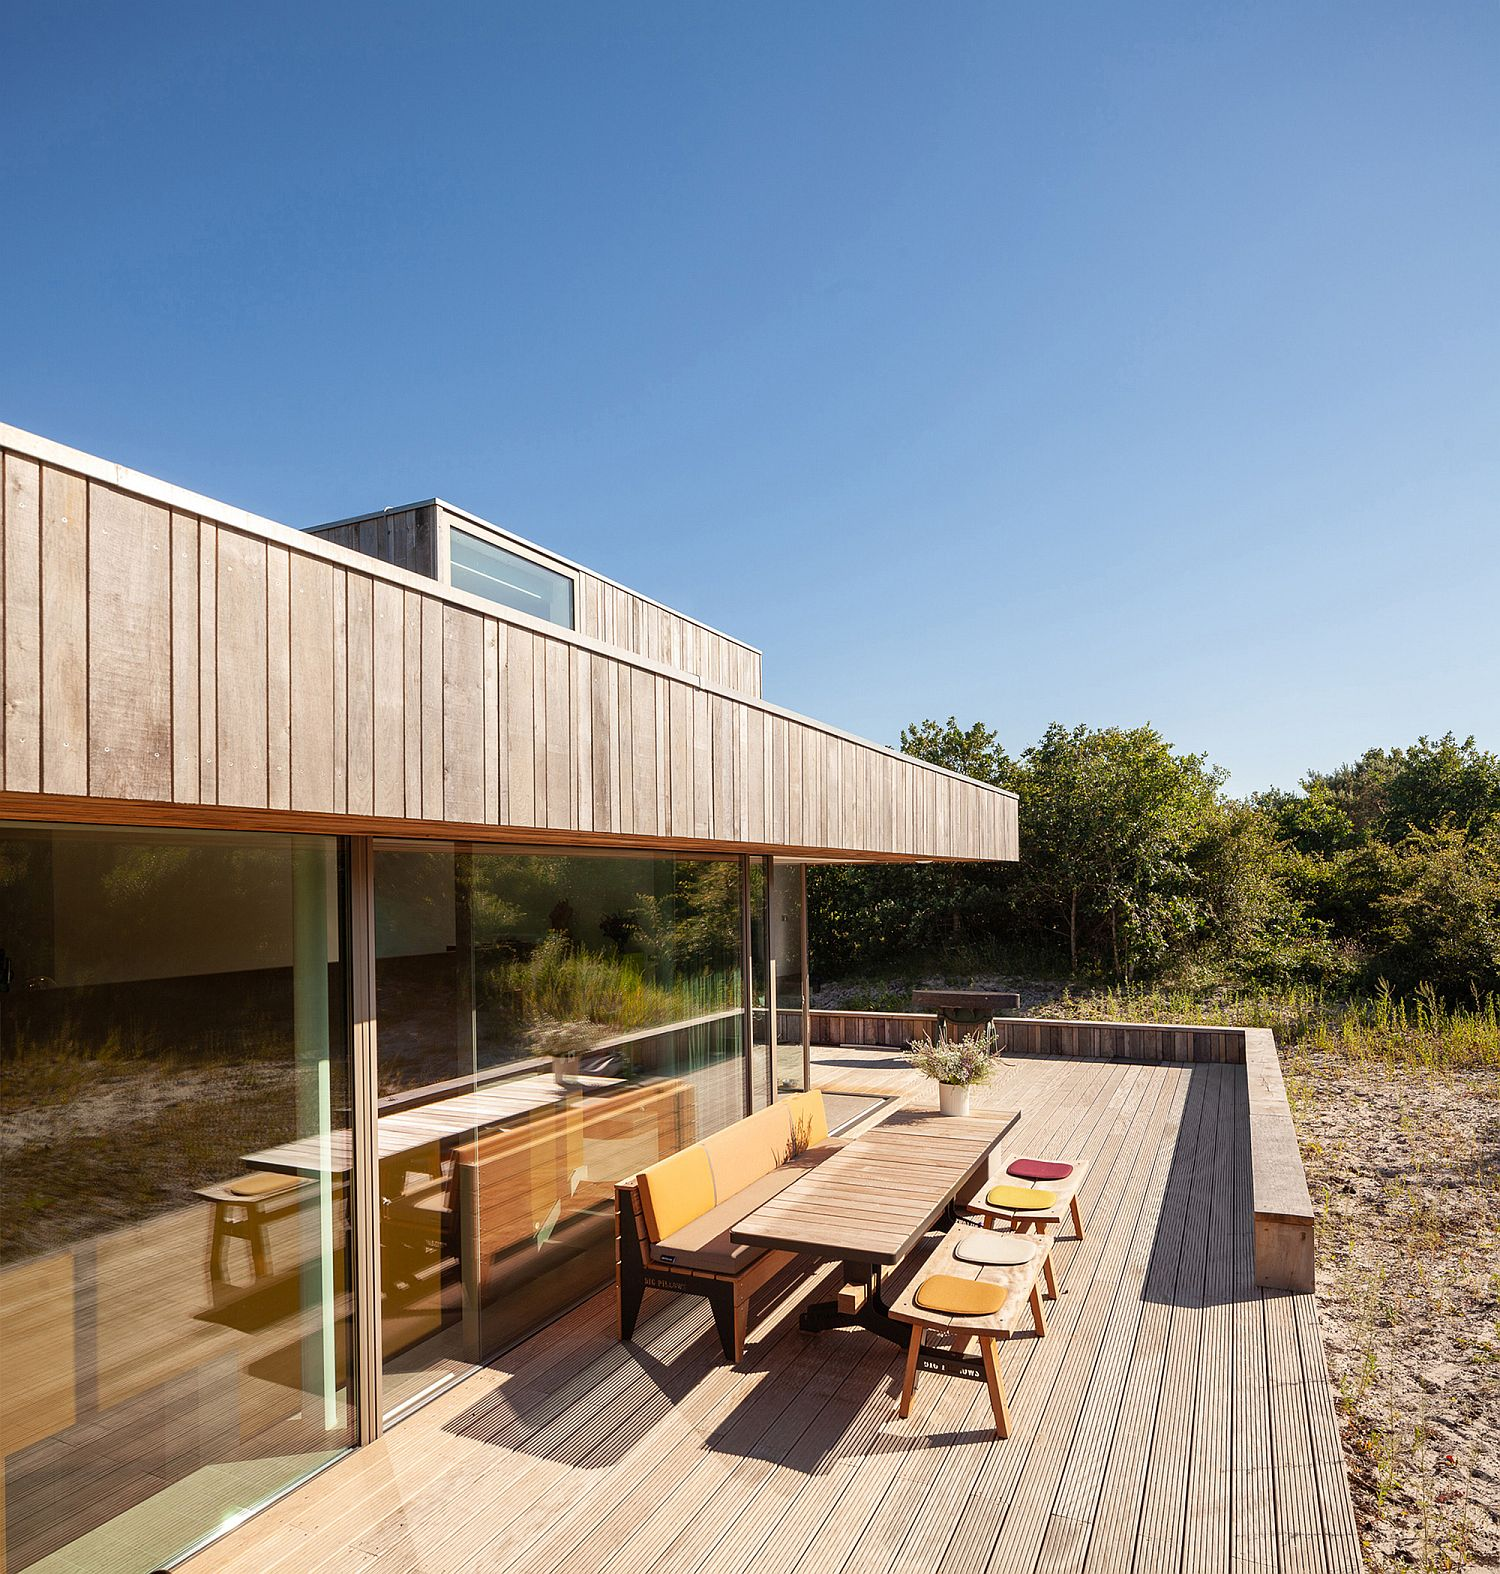 Sweeping wooden deck outside offers connectivity with nature